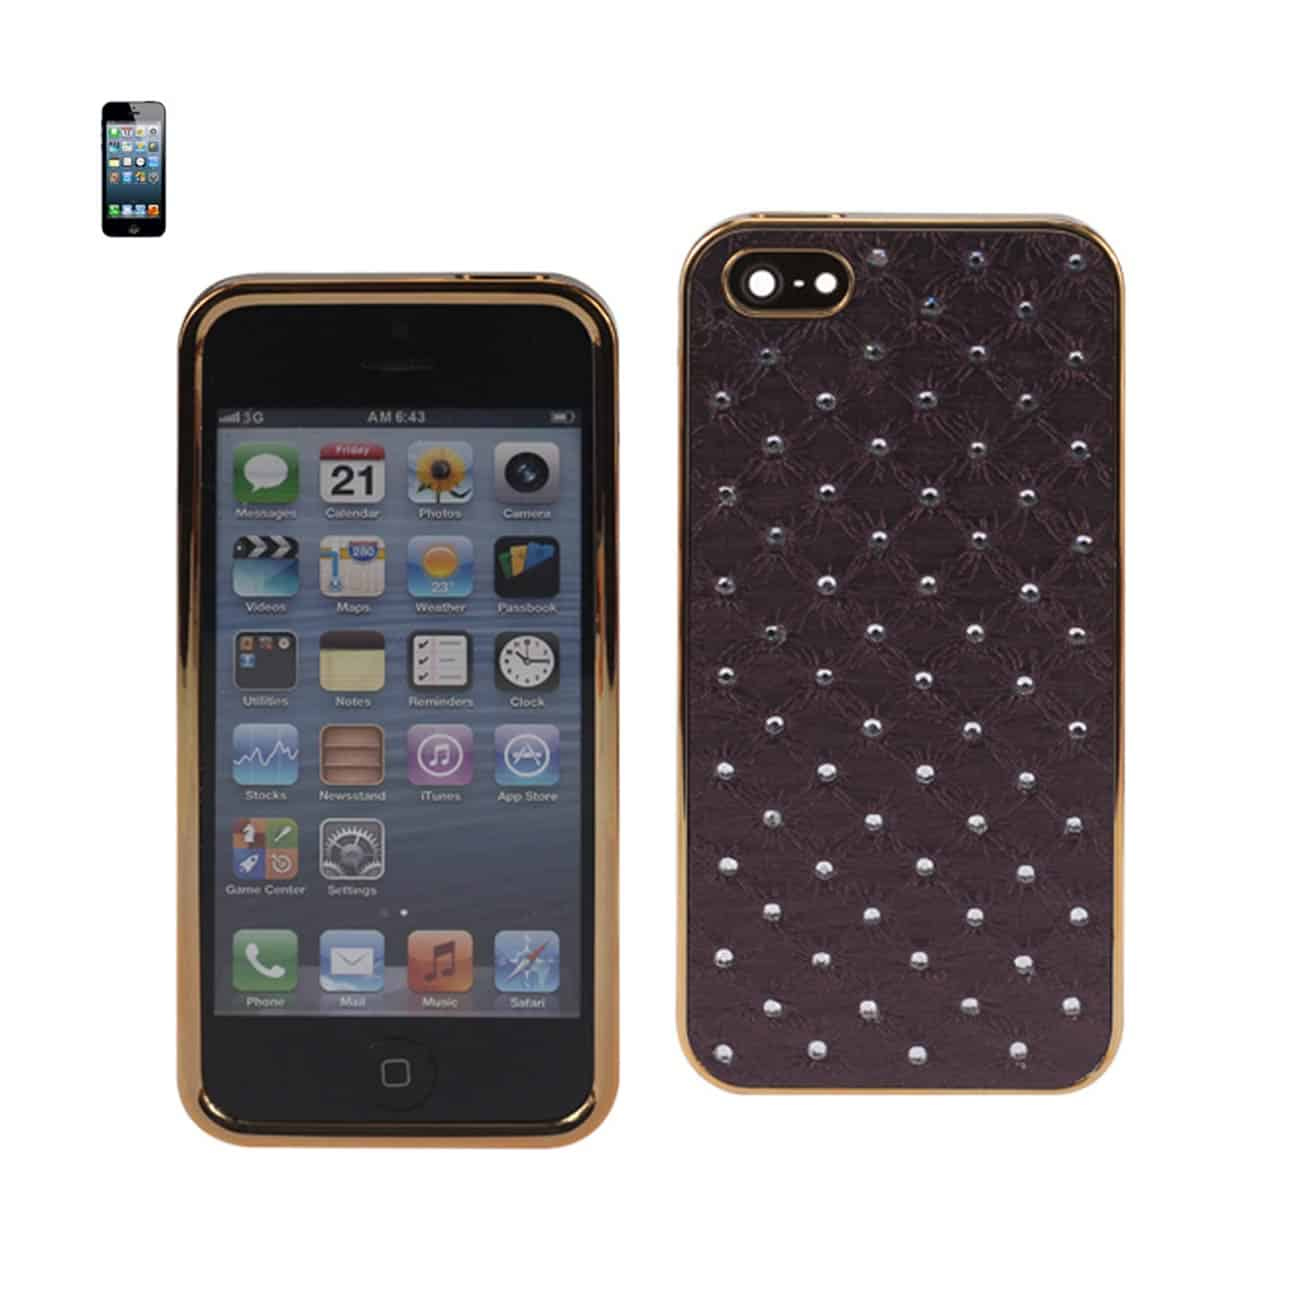 IPHONE 5/5S/SE JEWELRY DIAMOND STUDS CASE IN DARK PURPLE